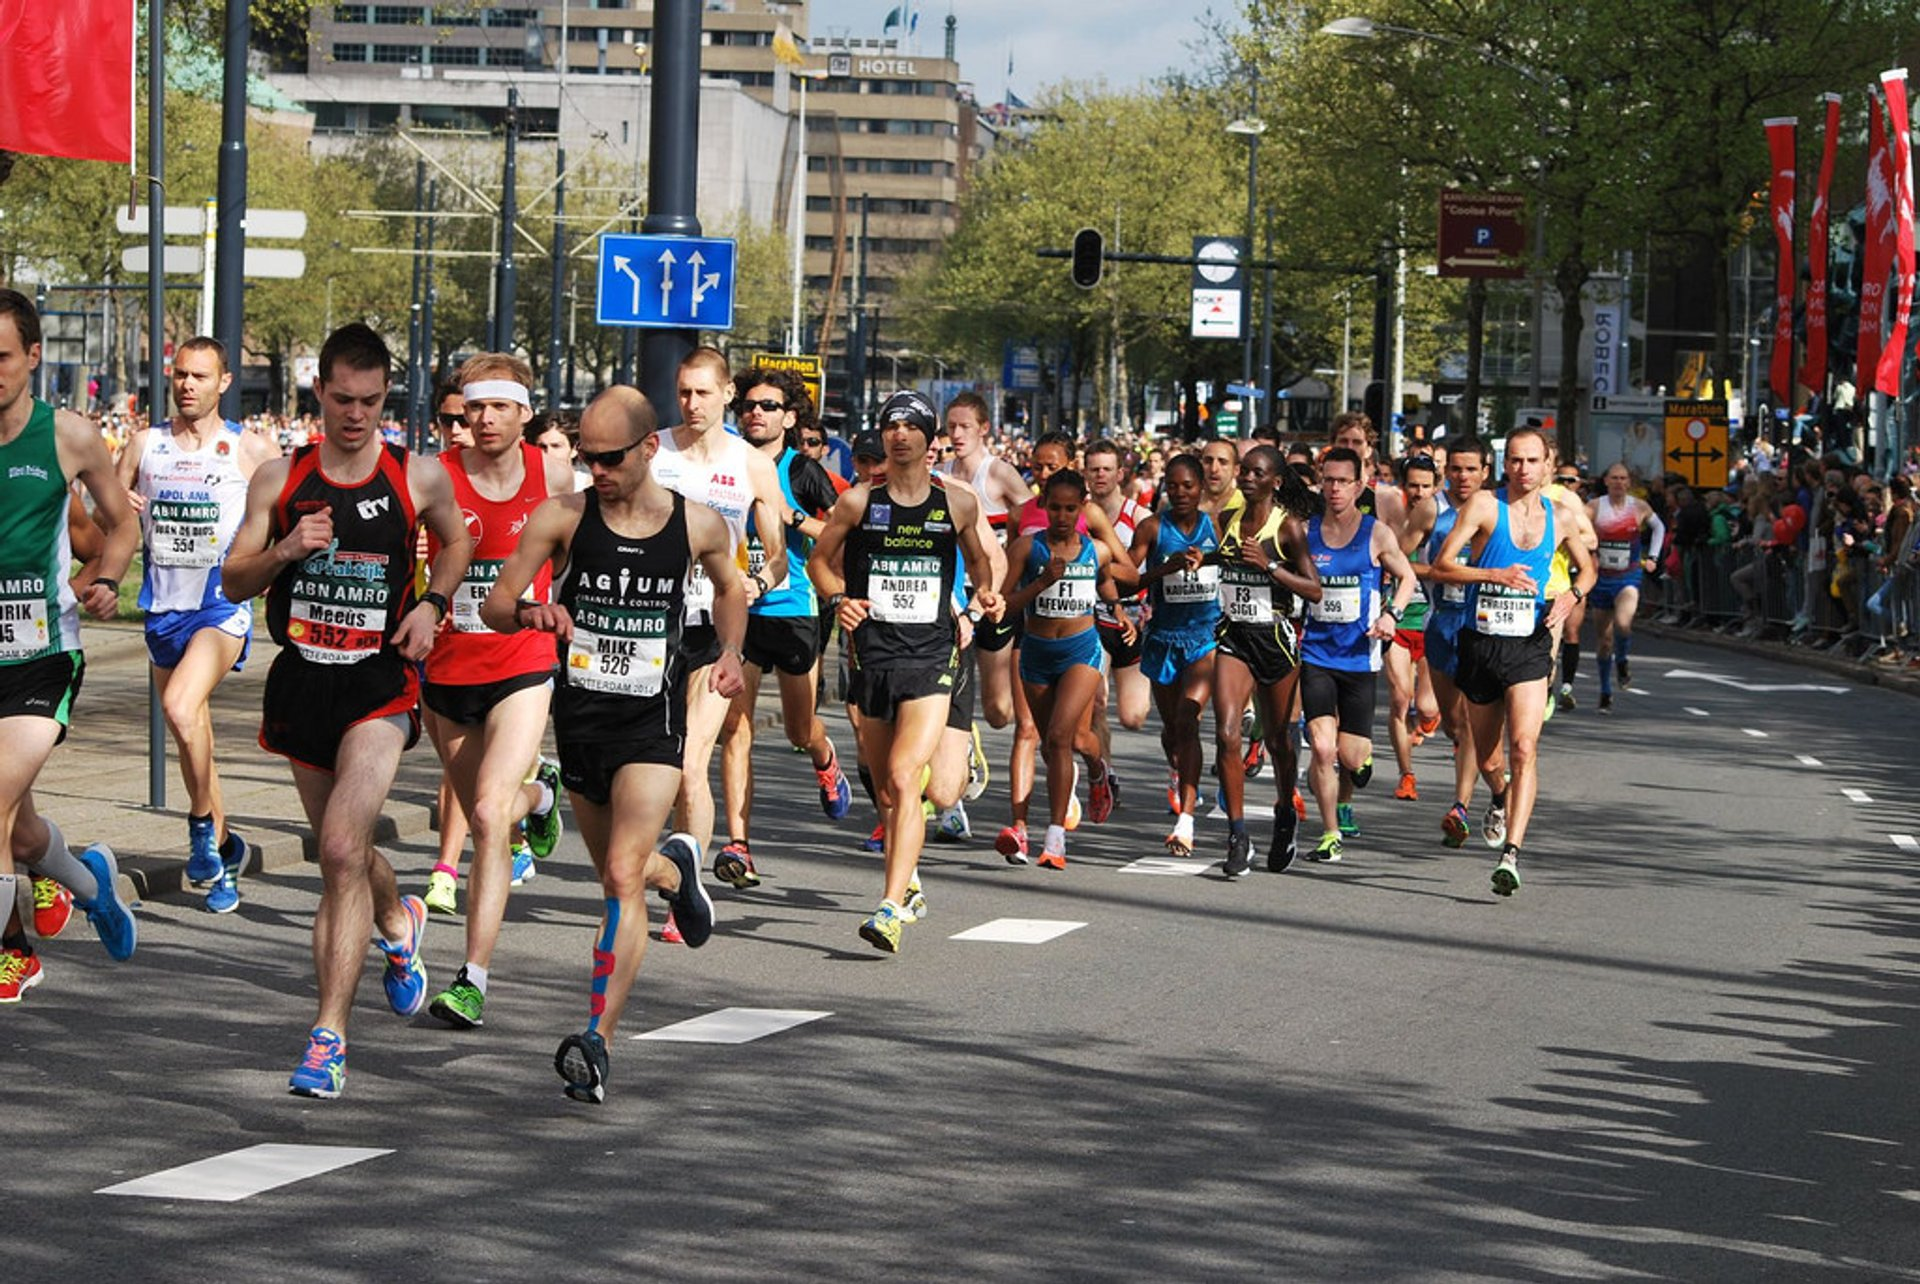 Rotterdam Marathon in The Netherlands - Best Season 2019